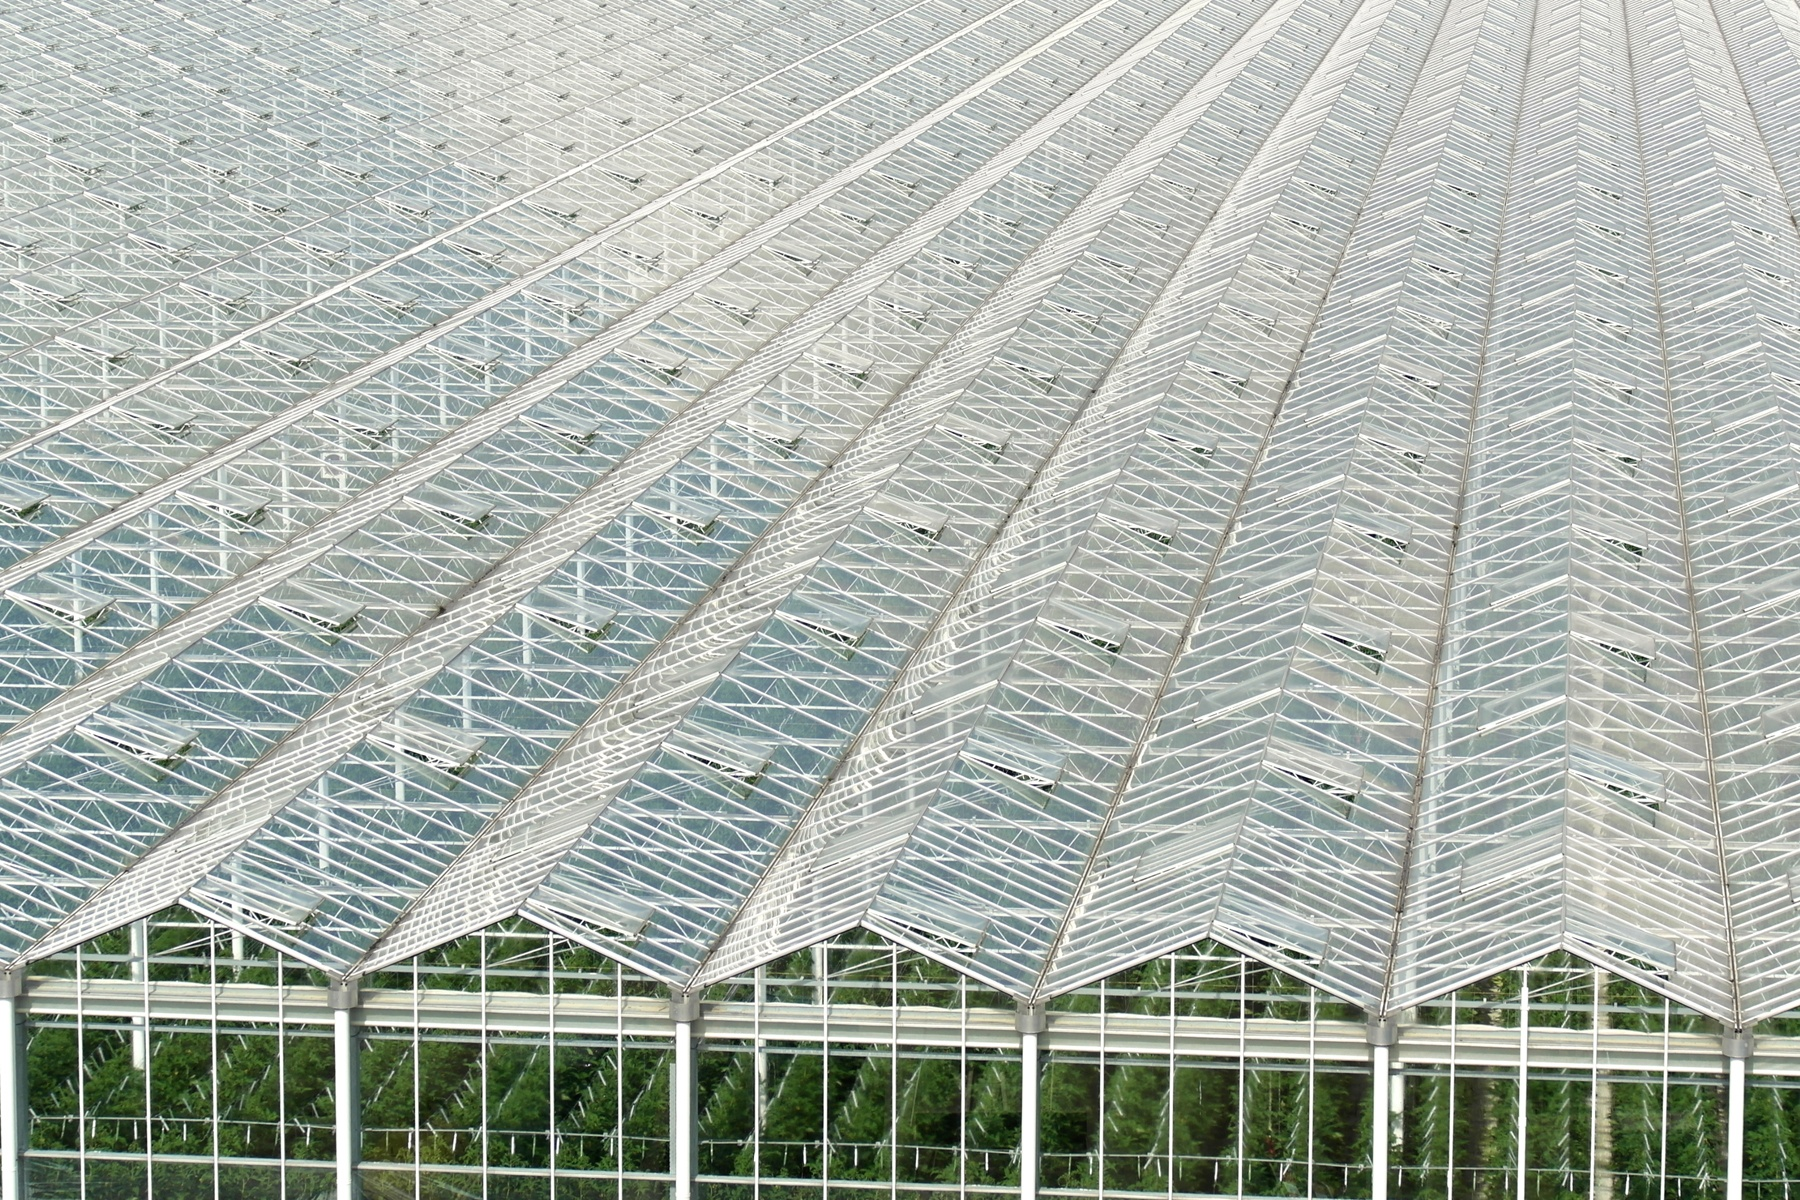 Greenhouse - 11OCT13.jpg